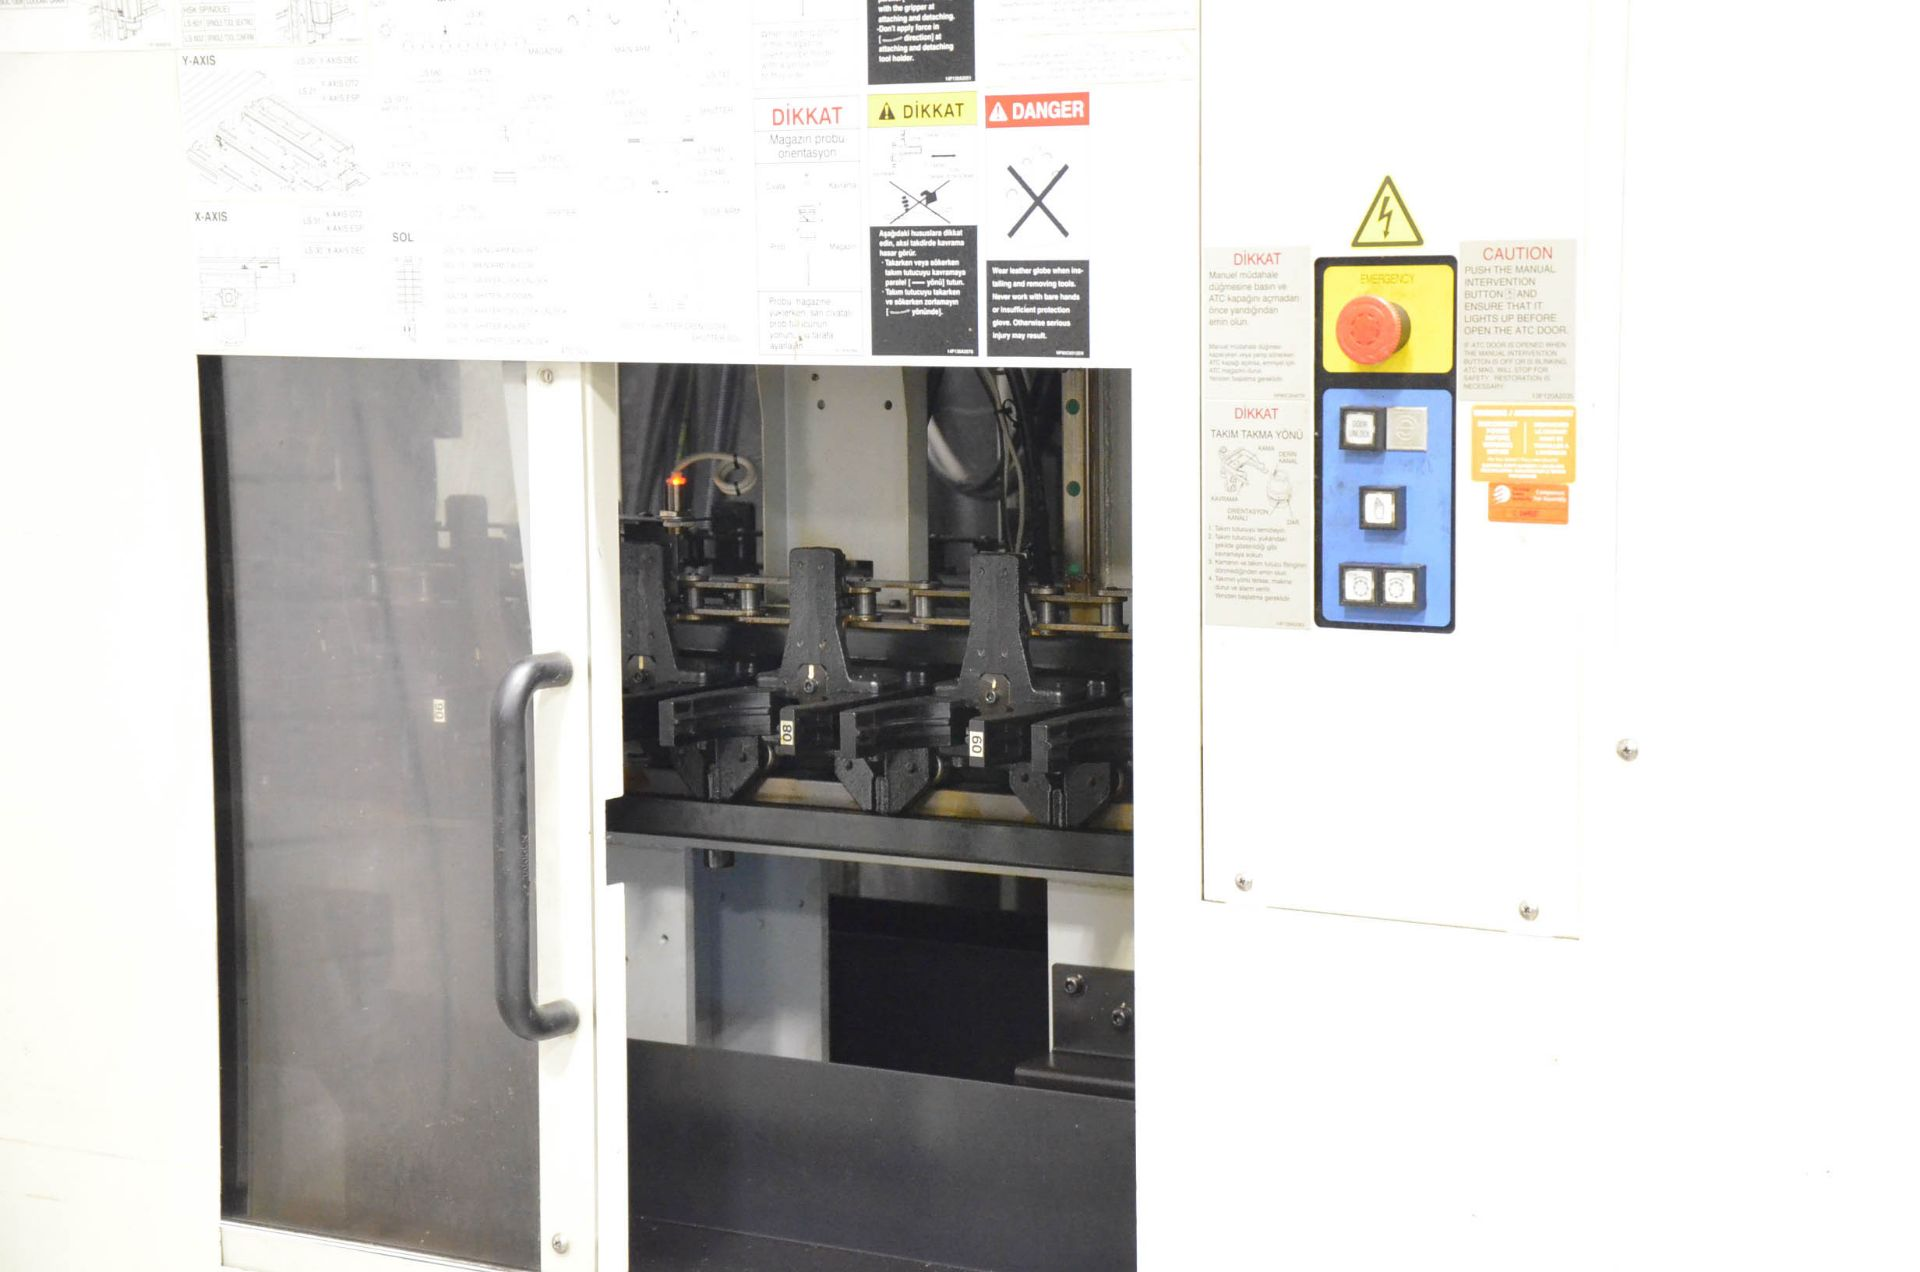 MAKINO (2008) V99L(#50) CNC VERTICAL MACHINING CENTER WITH MAKINO PROFESSIONAL 5 CNC CONTROL, 39. - Image 9 of 12